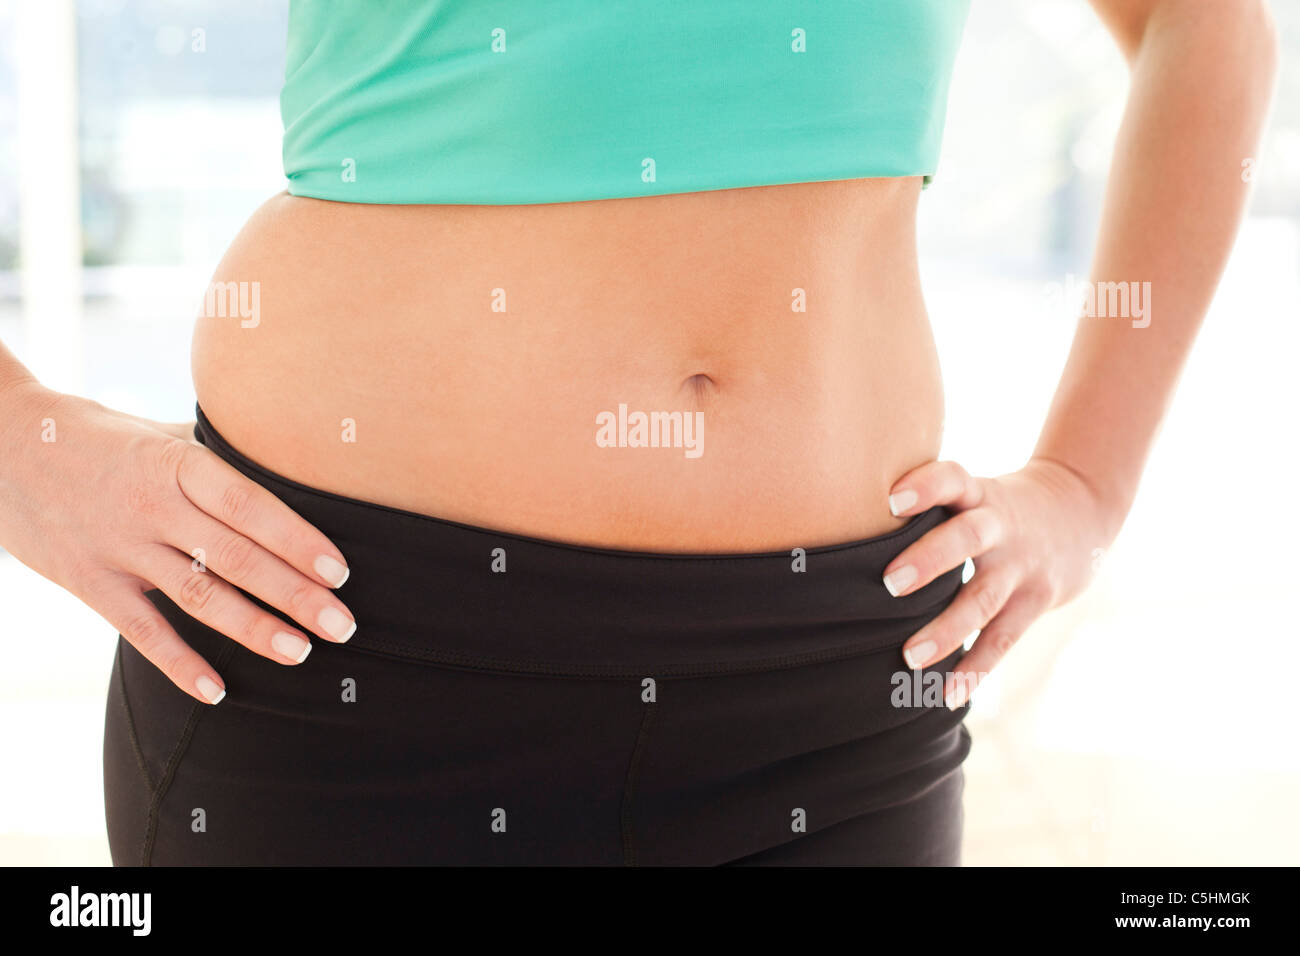 Woman's abdomen - Stock Image